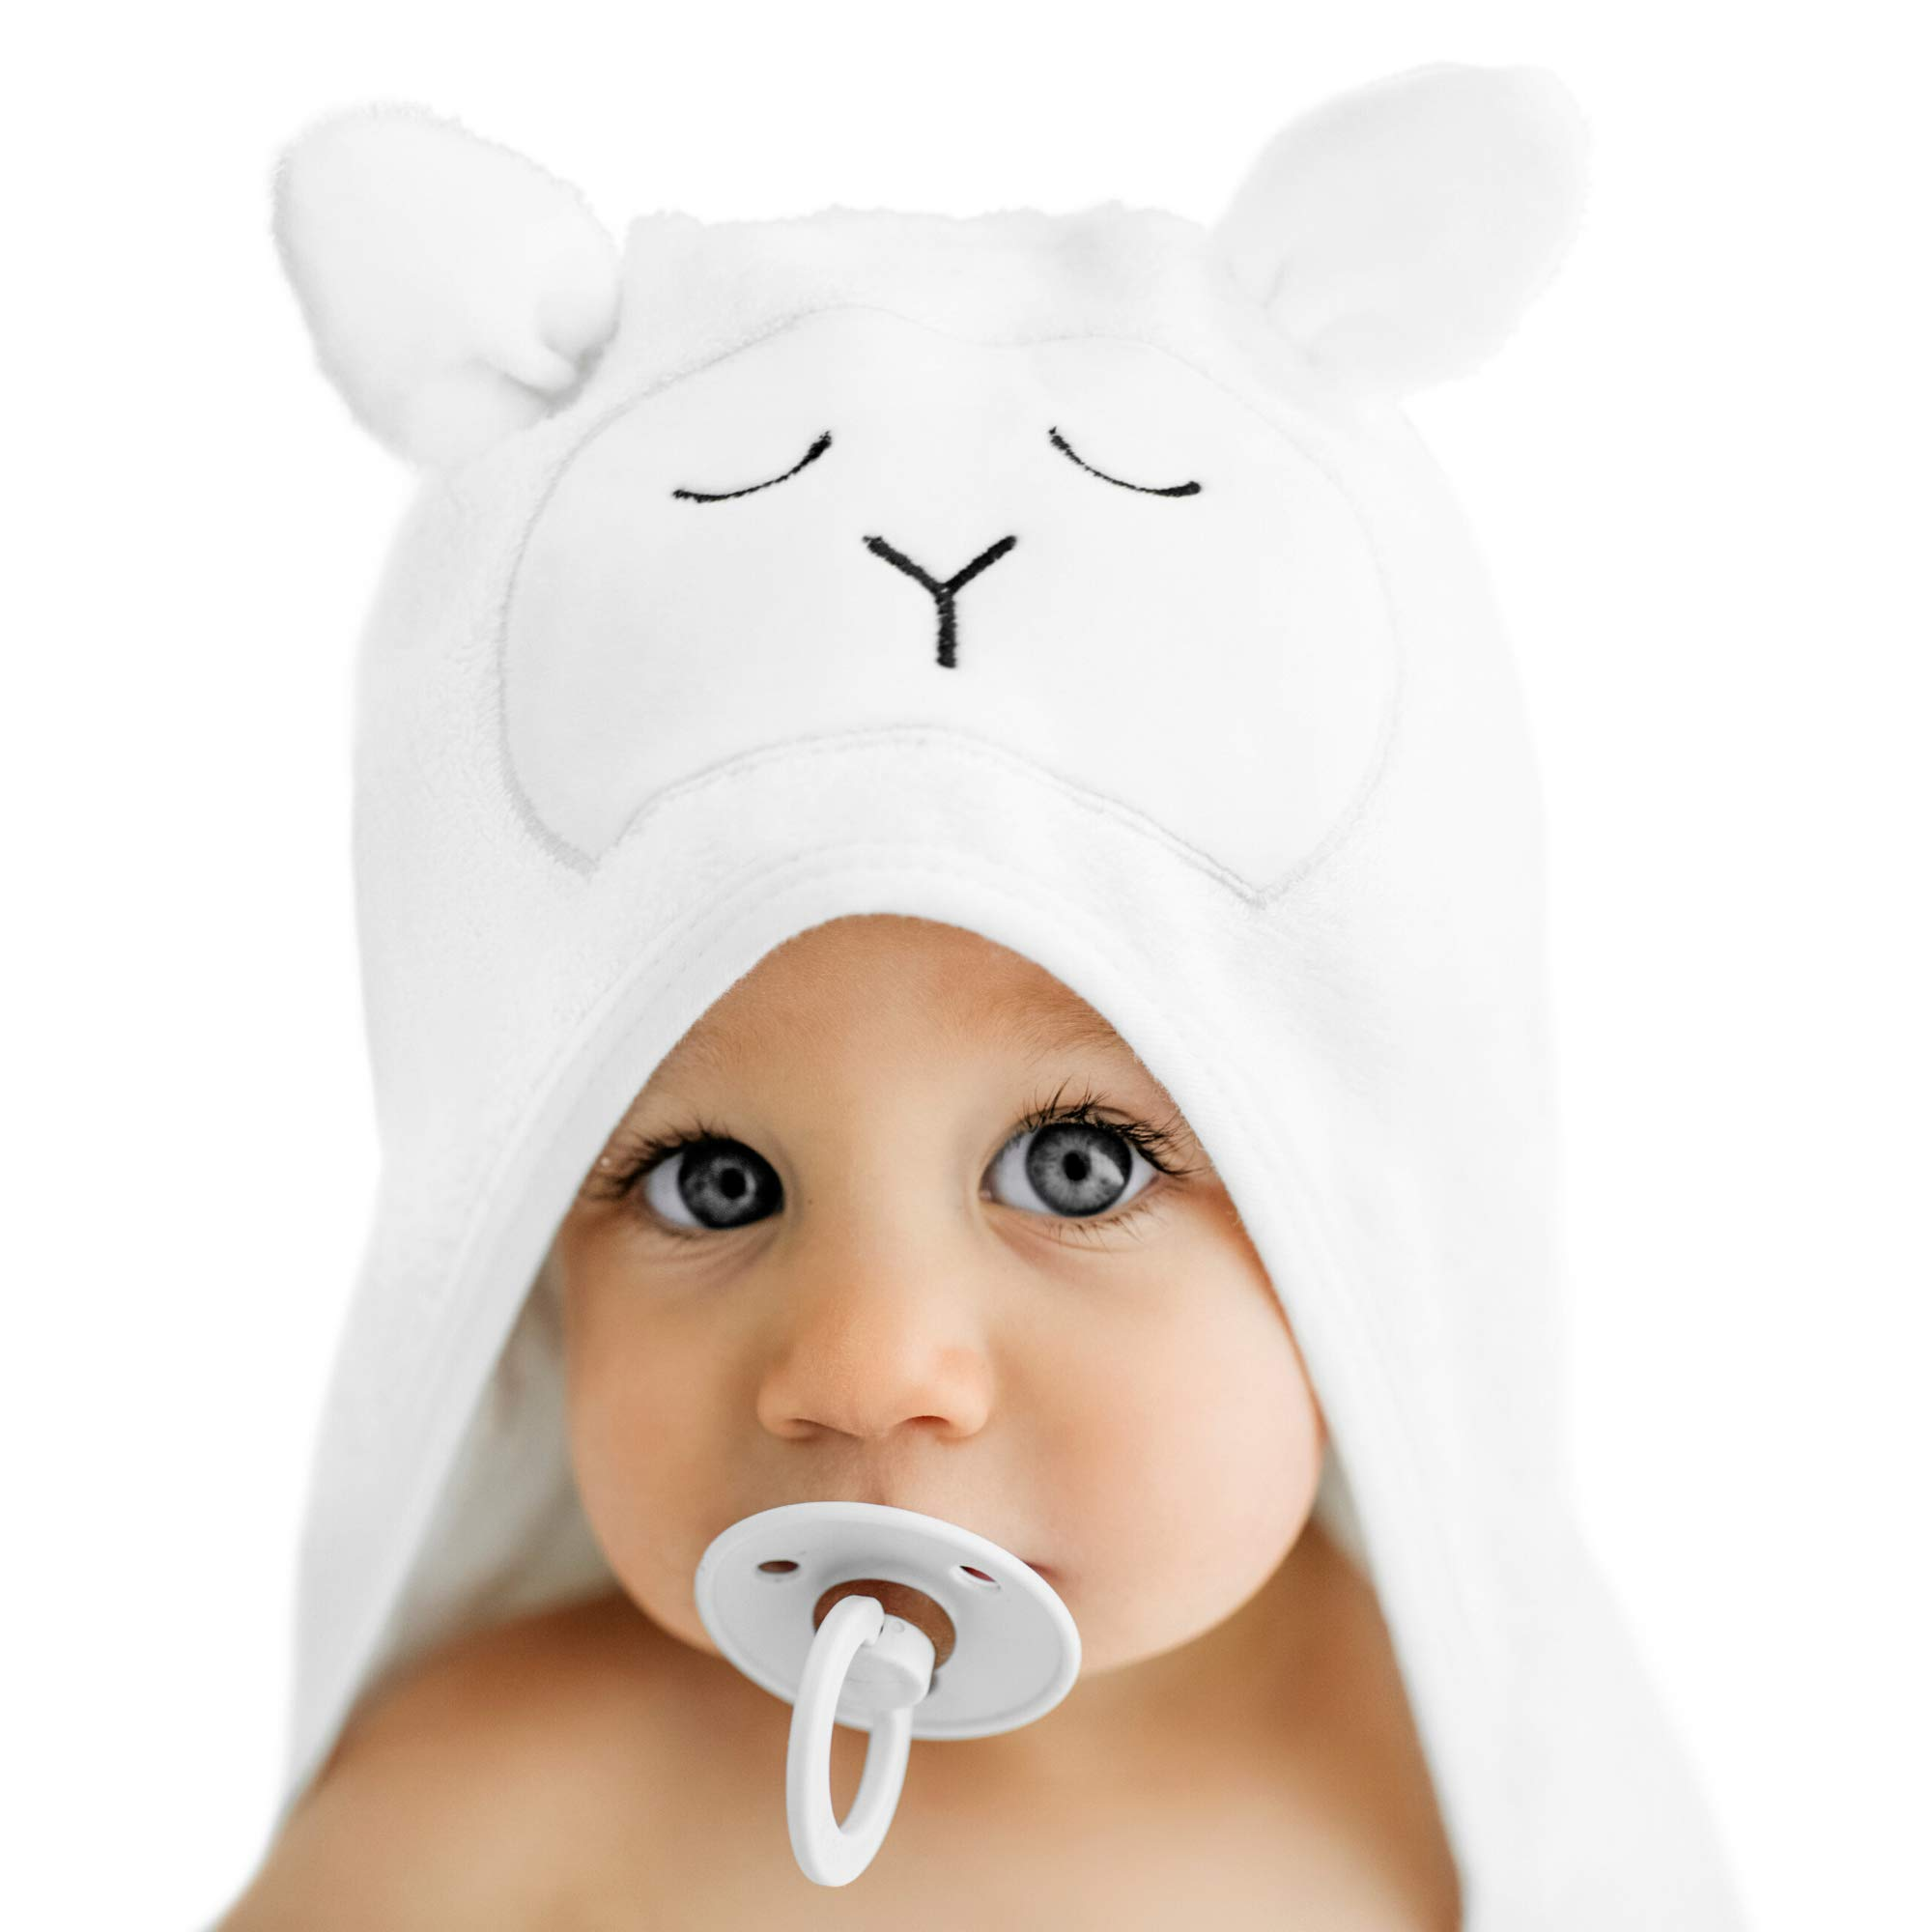 Lilyseed Premium Organic Bamboo Hooded Baby Towel and Washcloth Gift Set | Ultra Soft Baby Towels with Hood for Boys or Girls, Babies and Toddlers- Baby Shower Present- Large Infant Towel White Lamb